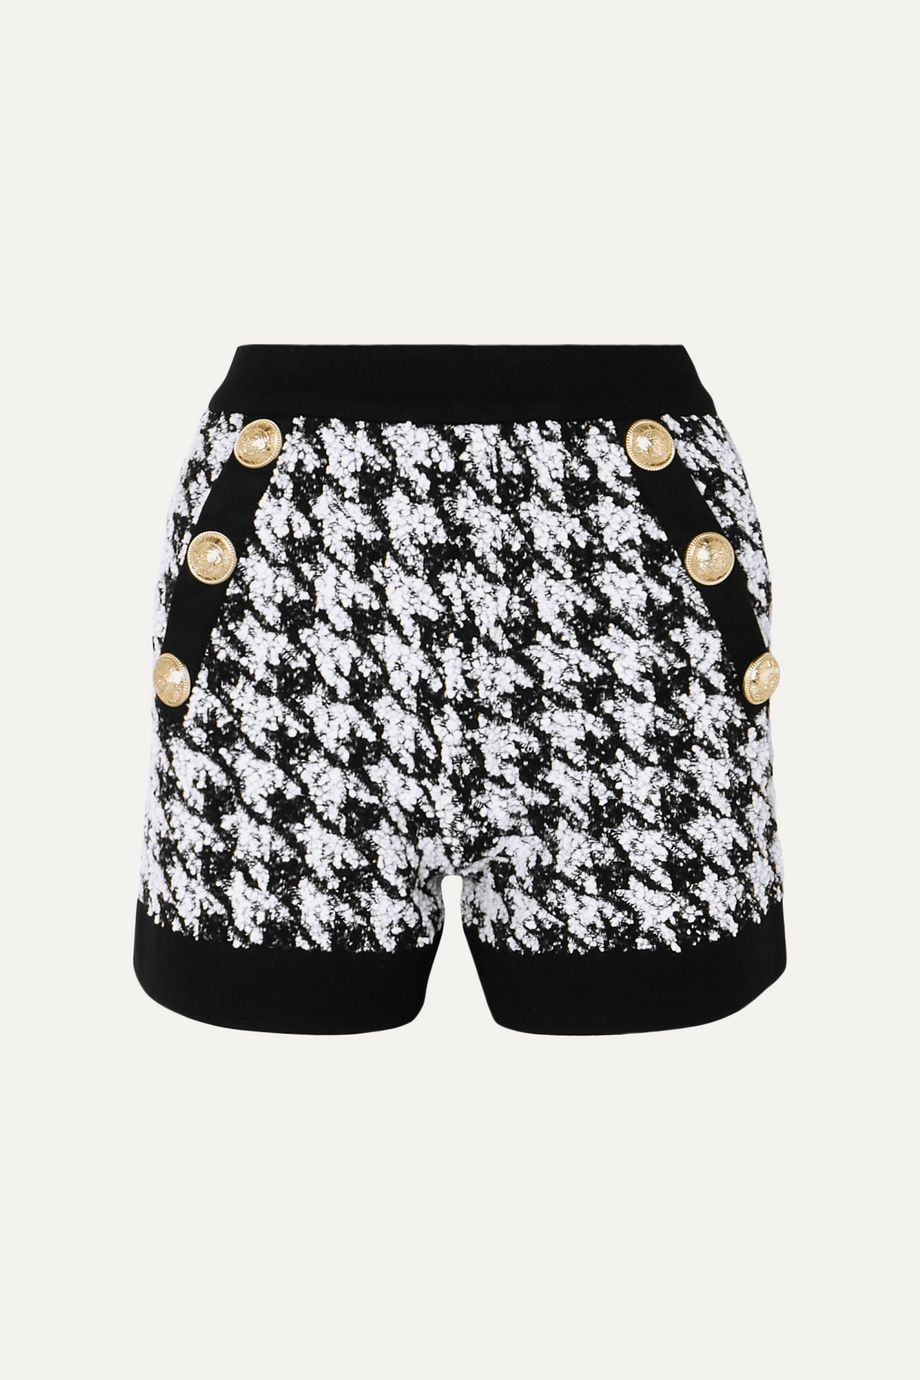 Balmain Button-embellished houndstooth bouclé-tweed shorts